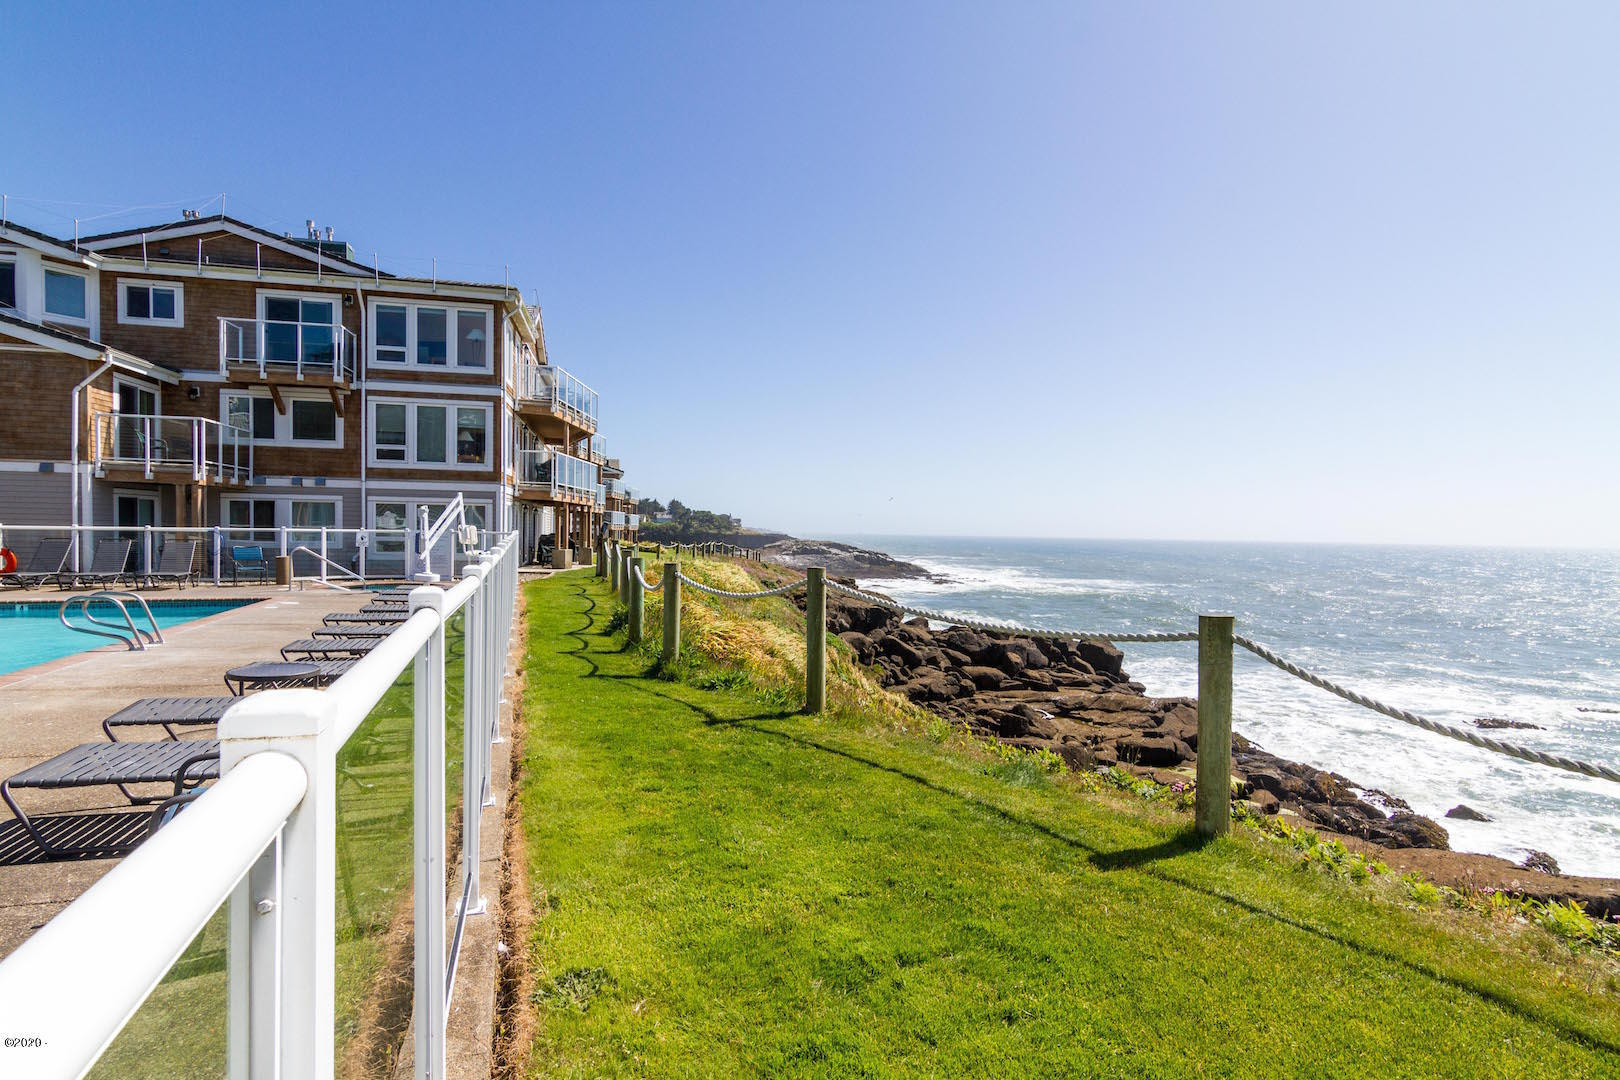 709 NW US 101, E502, Depoe Bay, OR 97341